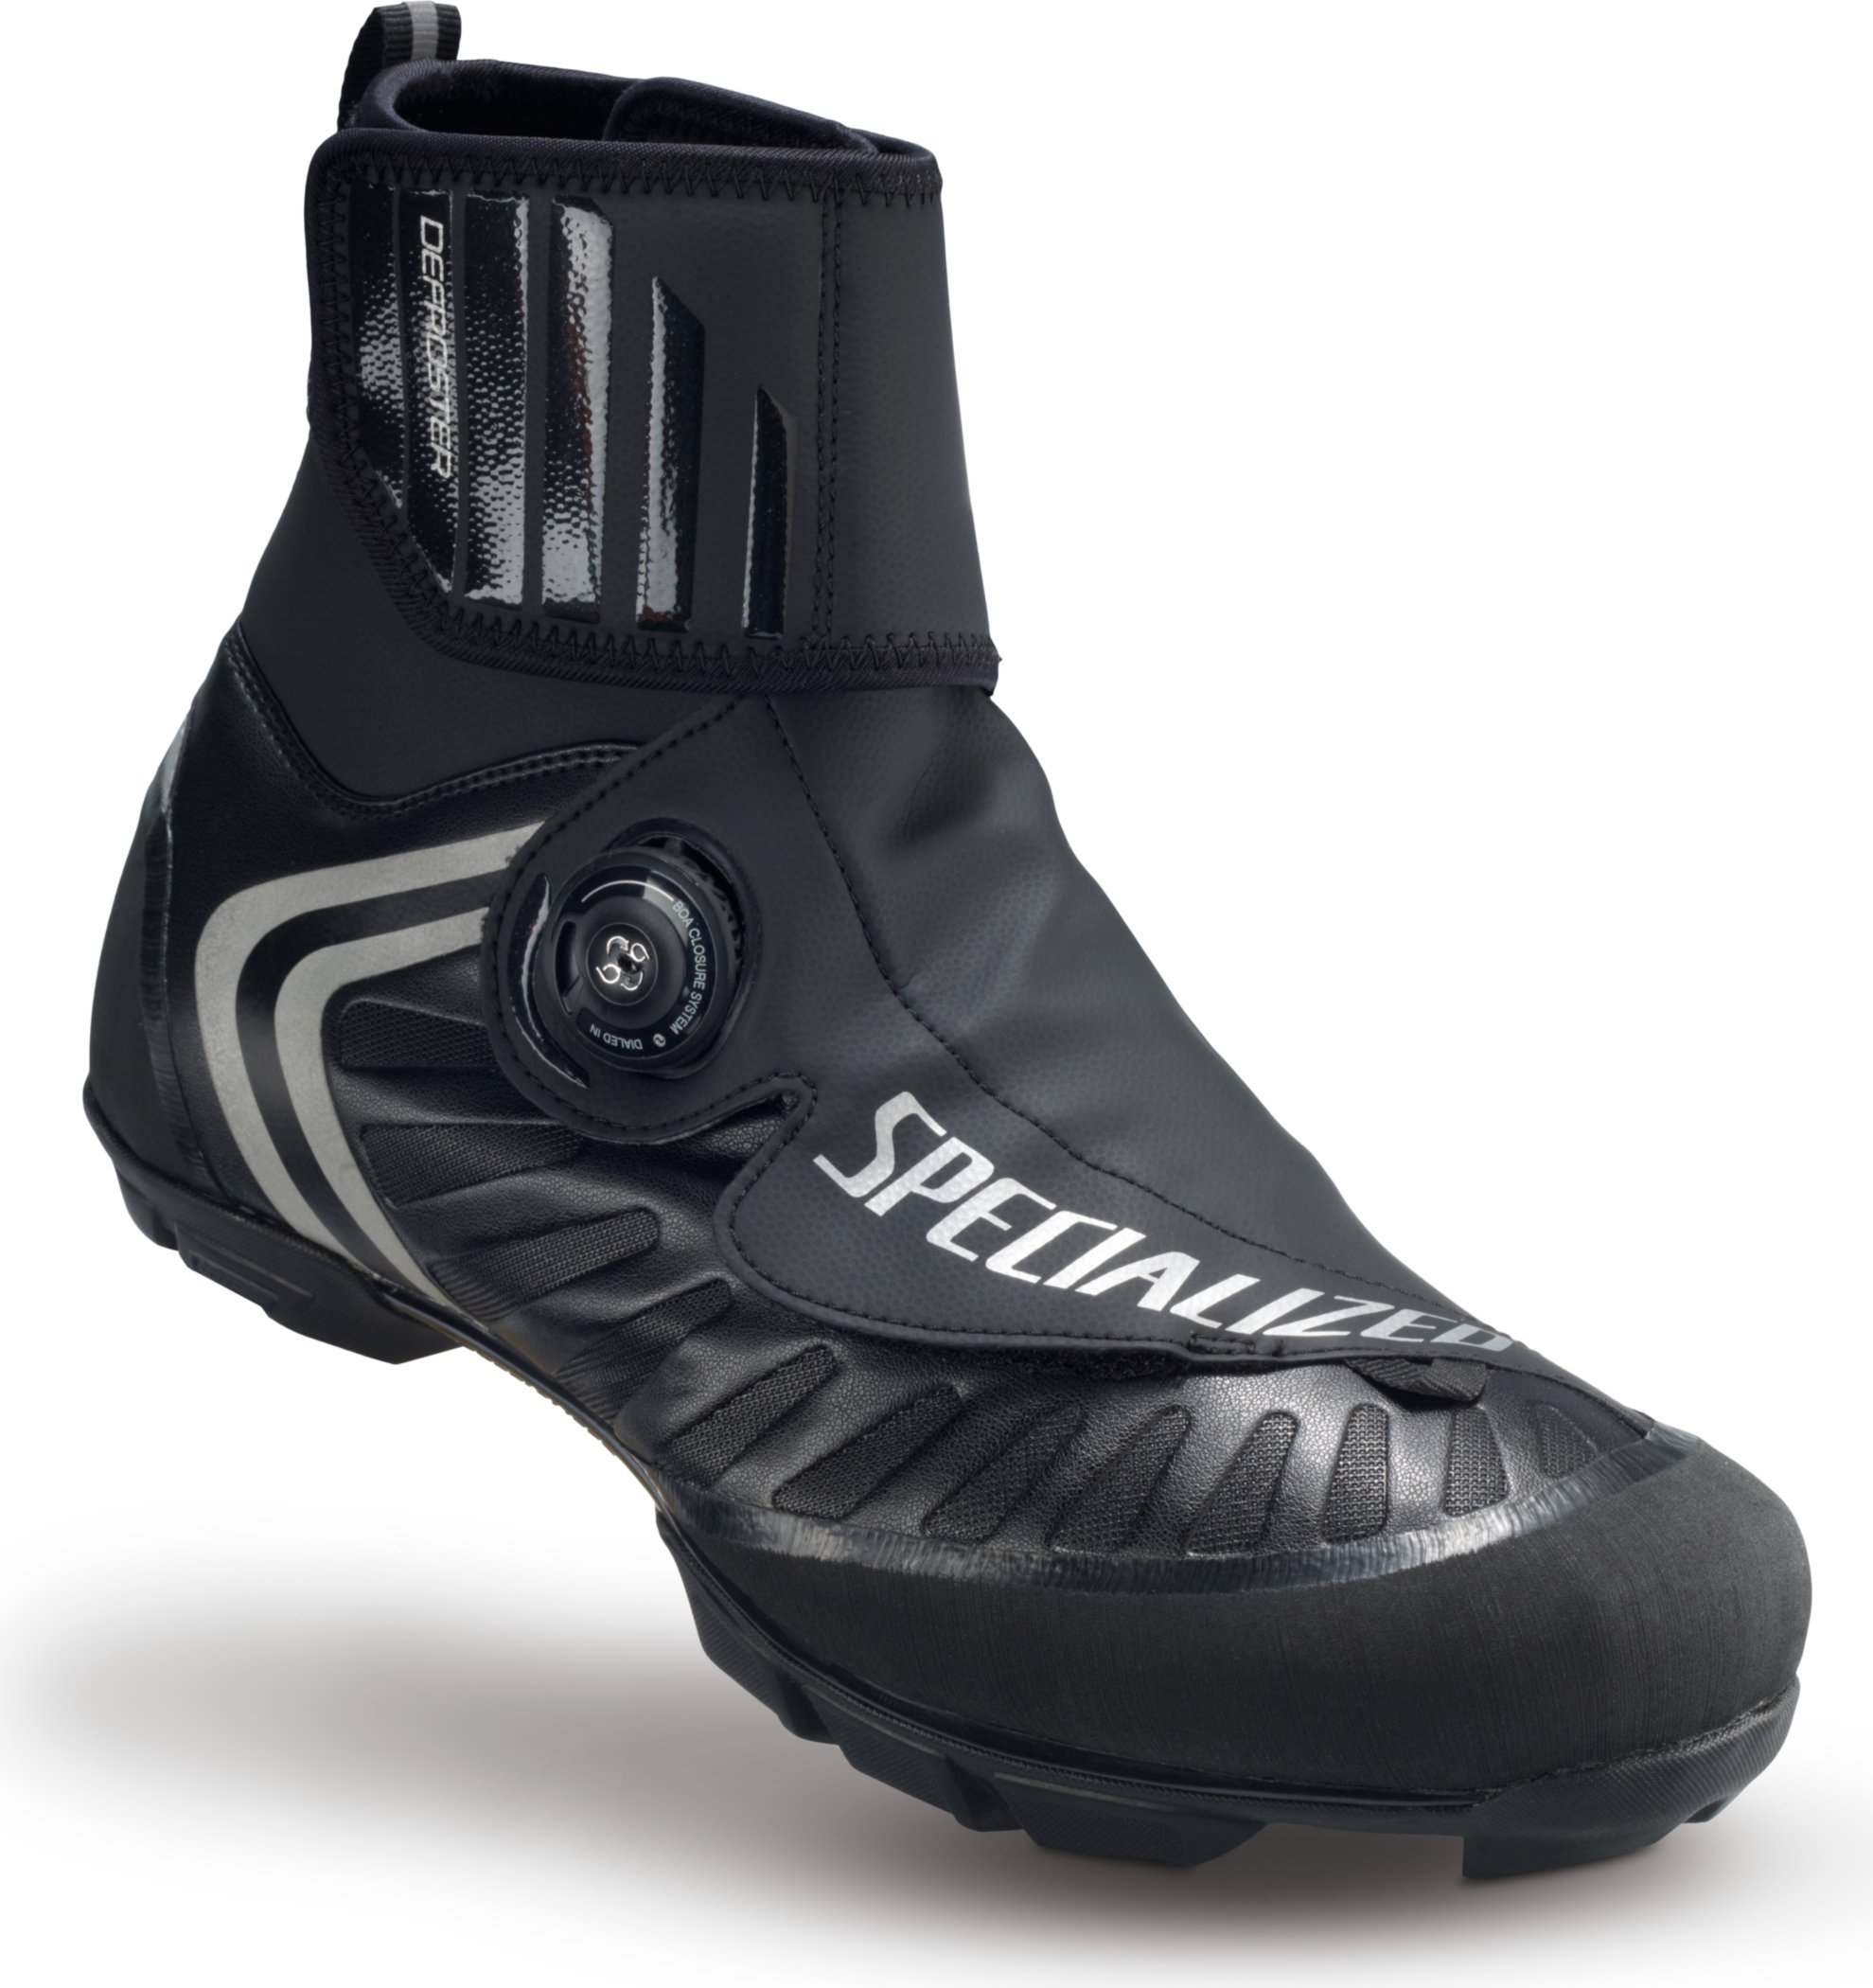 SPECIALIZED DEFROSTER TRAIL MTB SHOE BLK 46/12.25 - Alpha Bikes